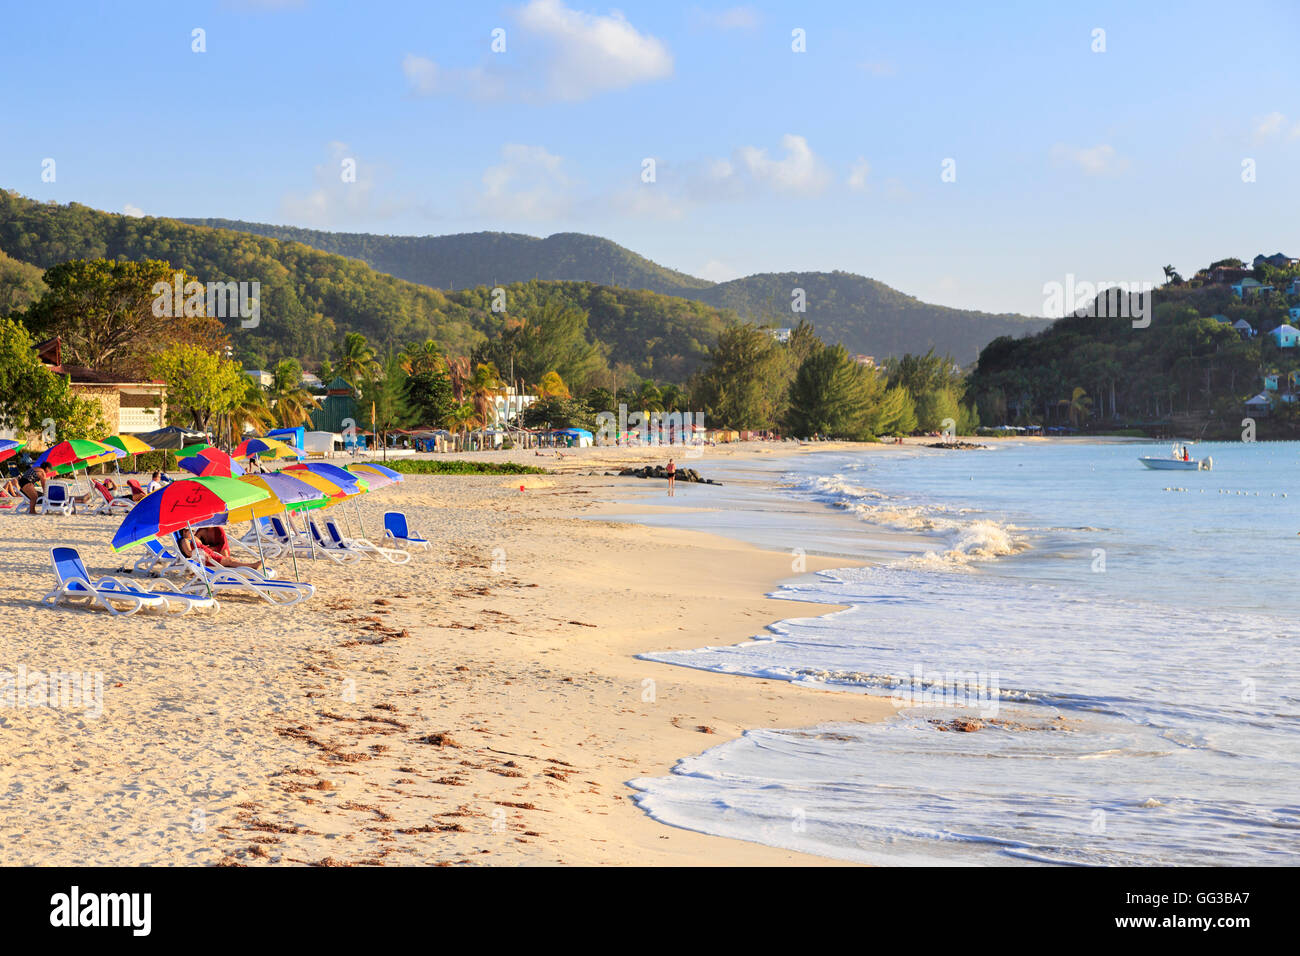 Golden sand, blue sky and colourful beach umbrellas at sunny Jolly Harbour, south-west Antigua - Stock Image